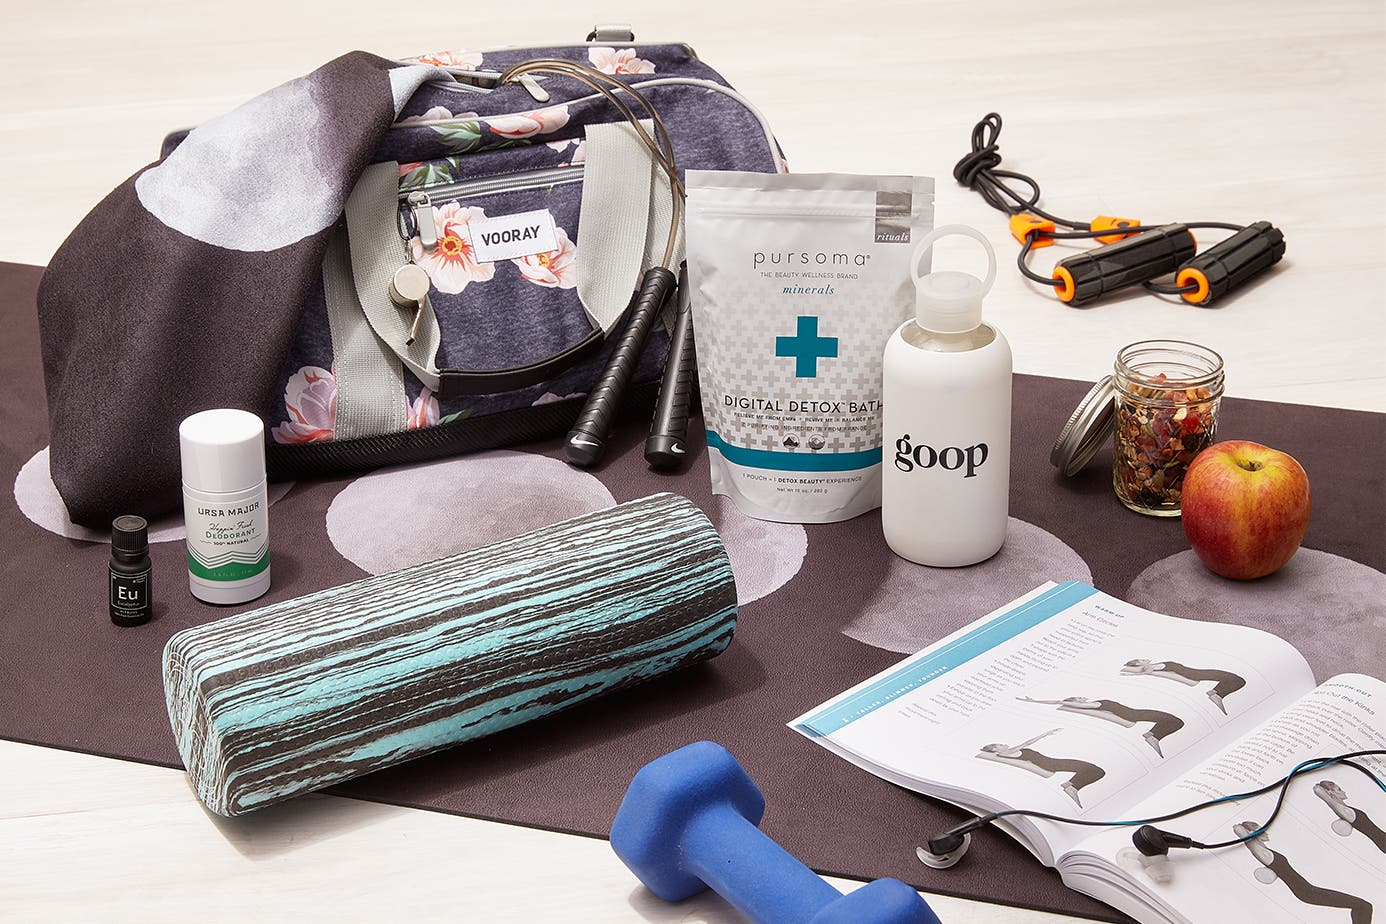 goop fitness products on a yoga mat.